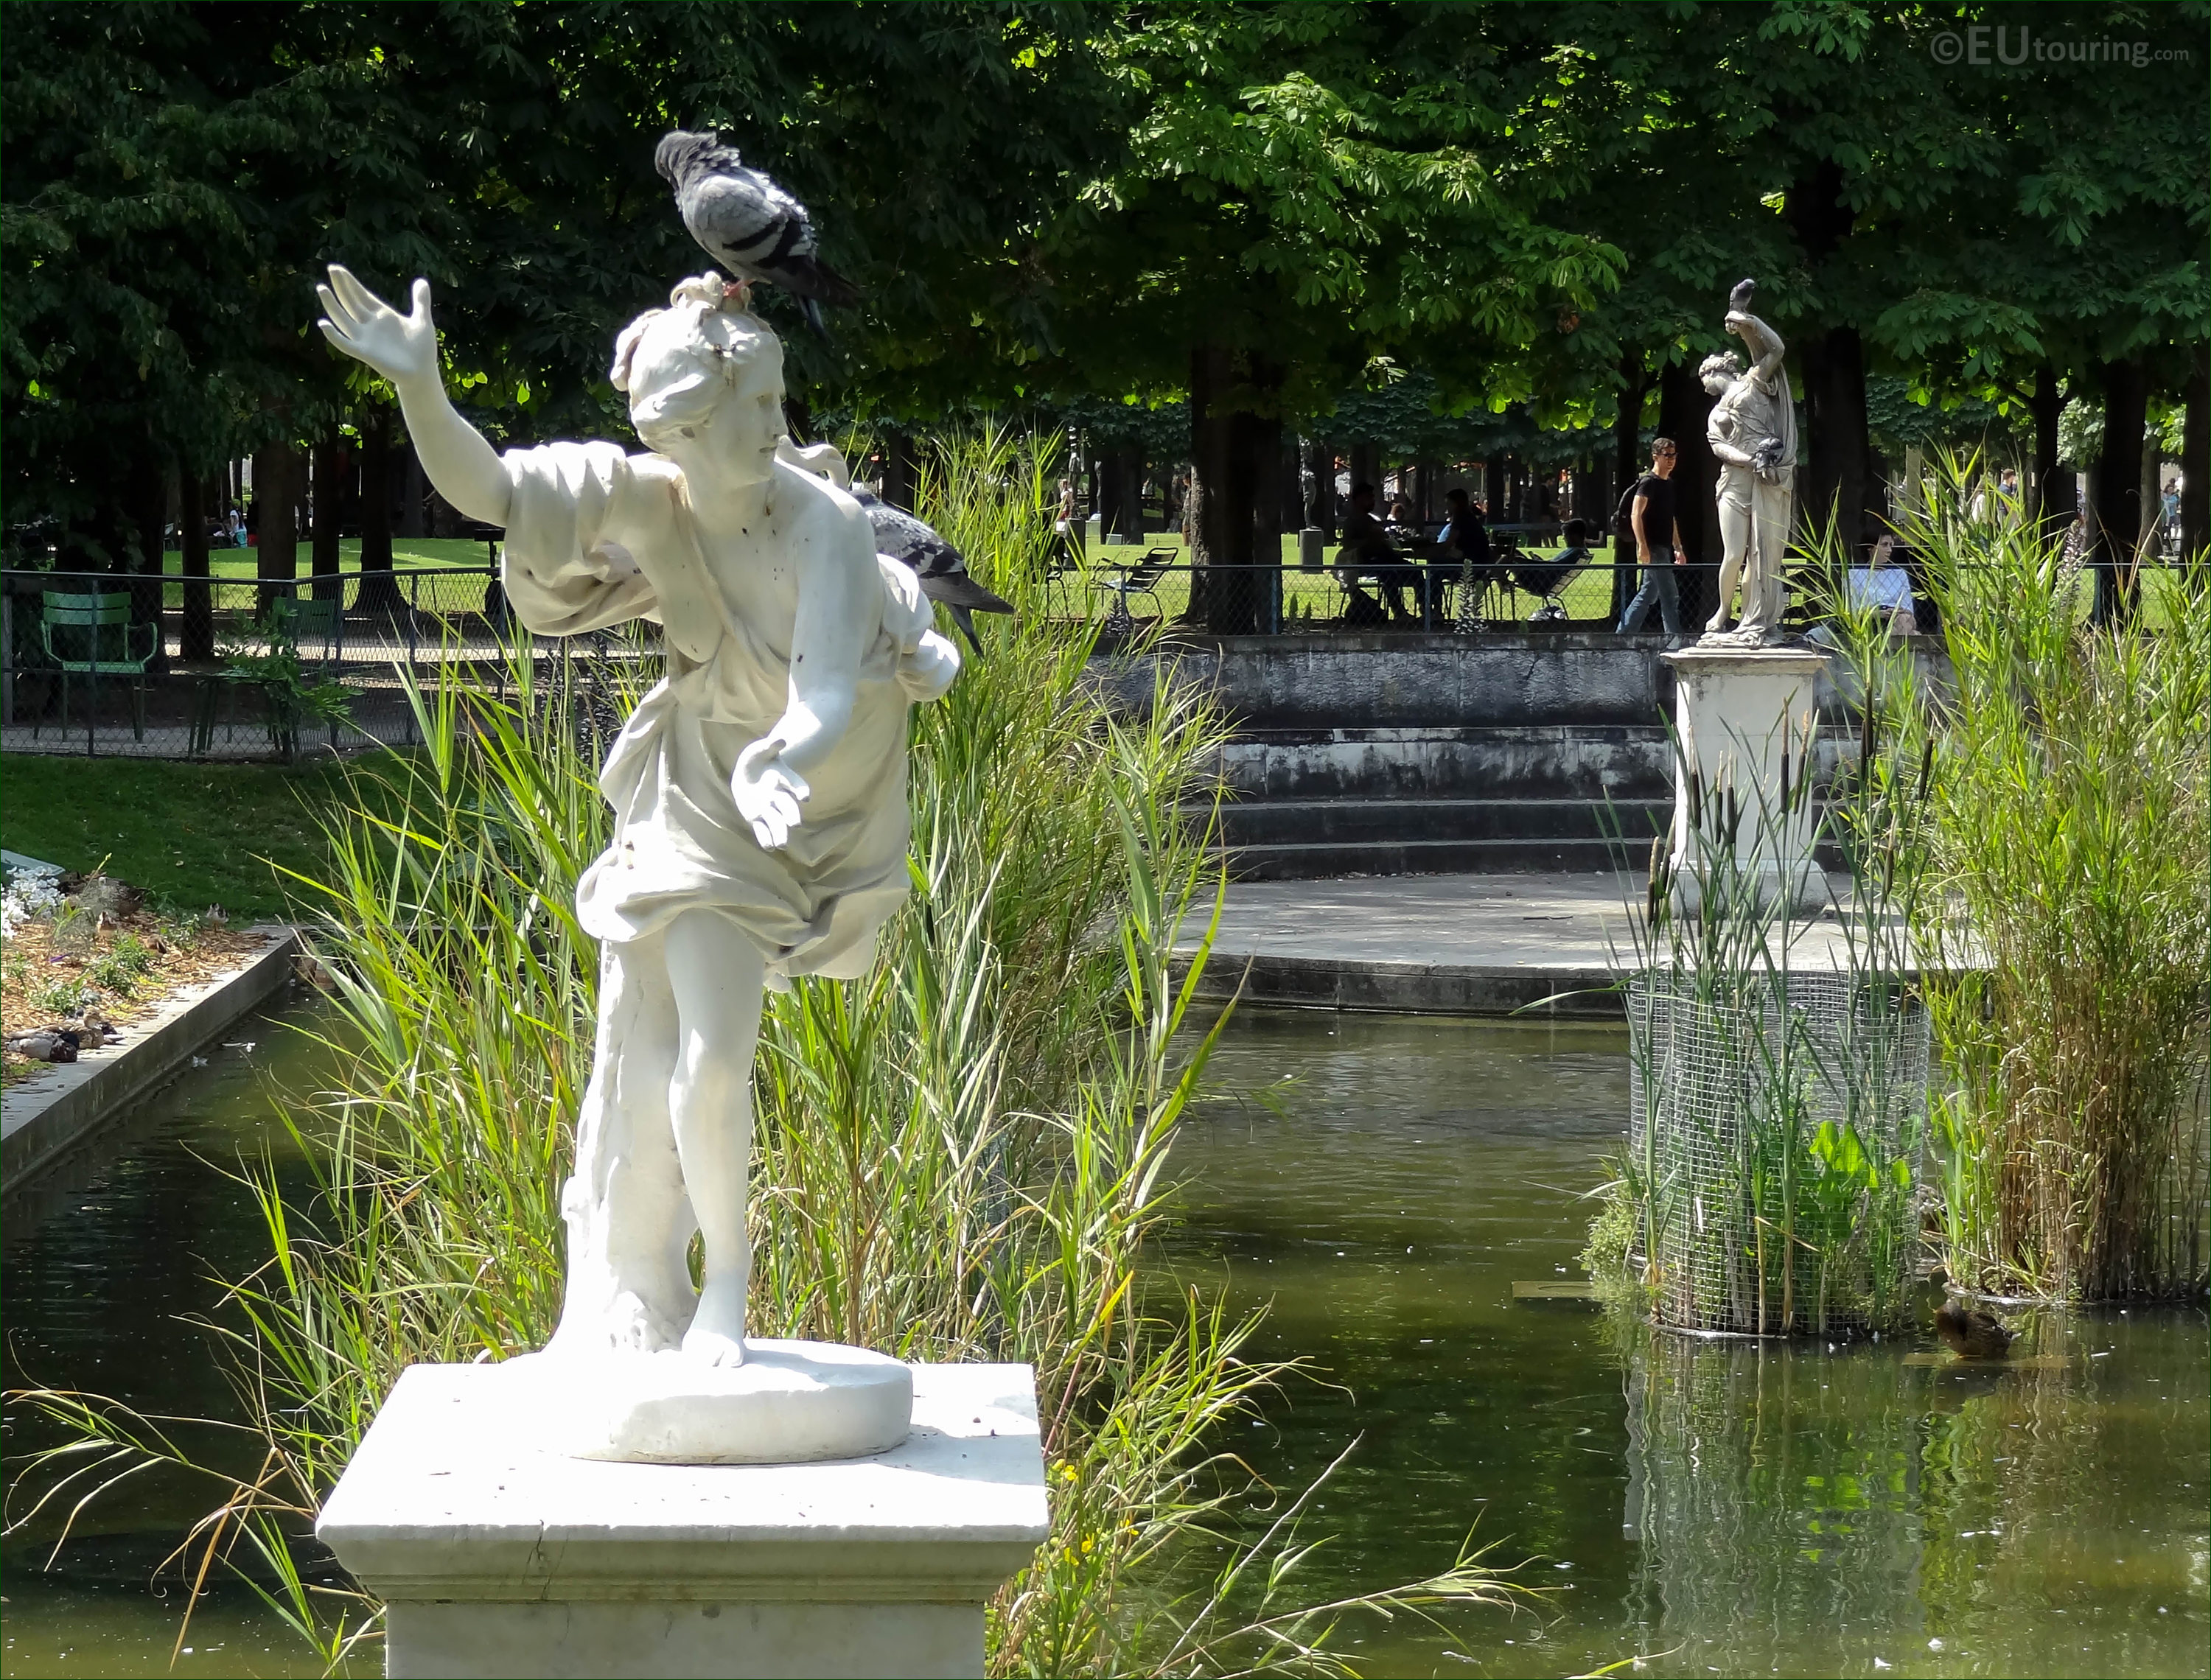 south side daphne statue in jardin des tuileries page 718. Black Bedroom Furniture Sets. Home Design Ideas